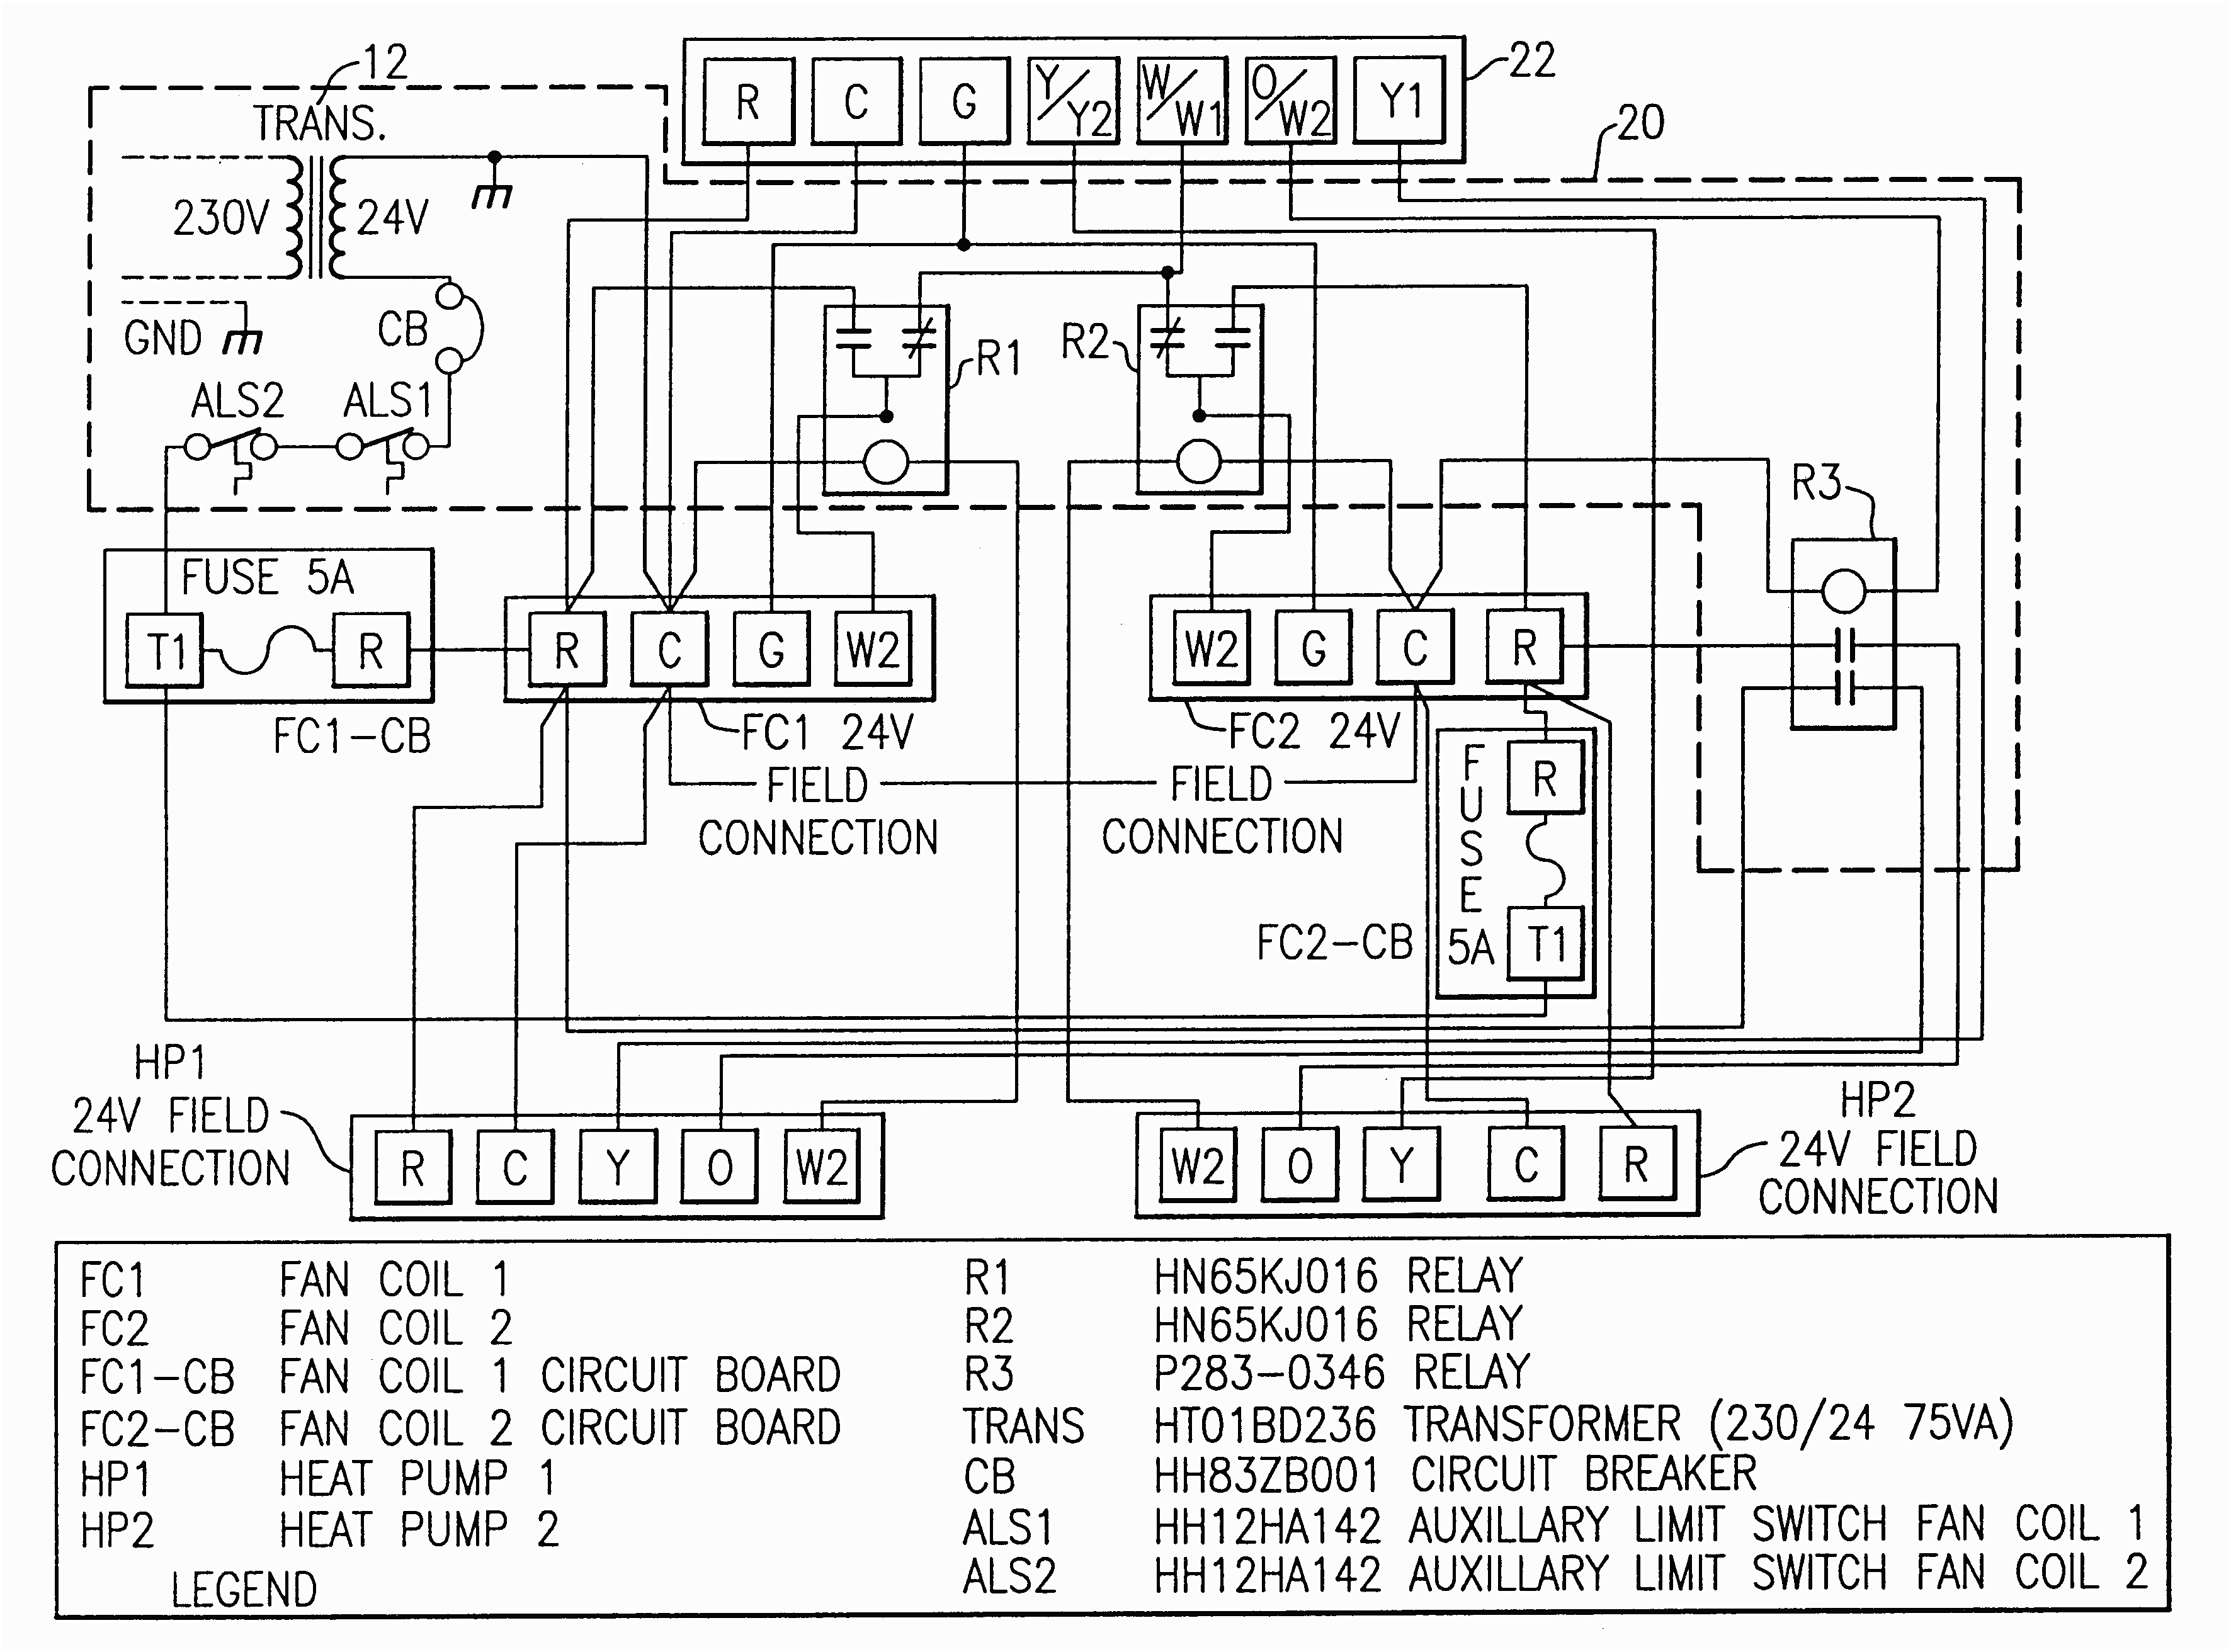 Wiring Diagram Of Carrier Air Conditioner - Great Installation Of - Carrier Air Conditioner Wiring Diagram